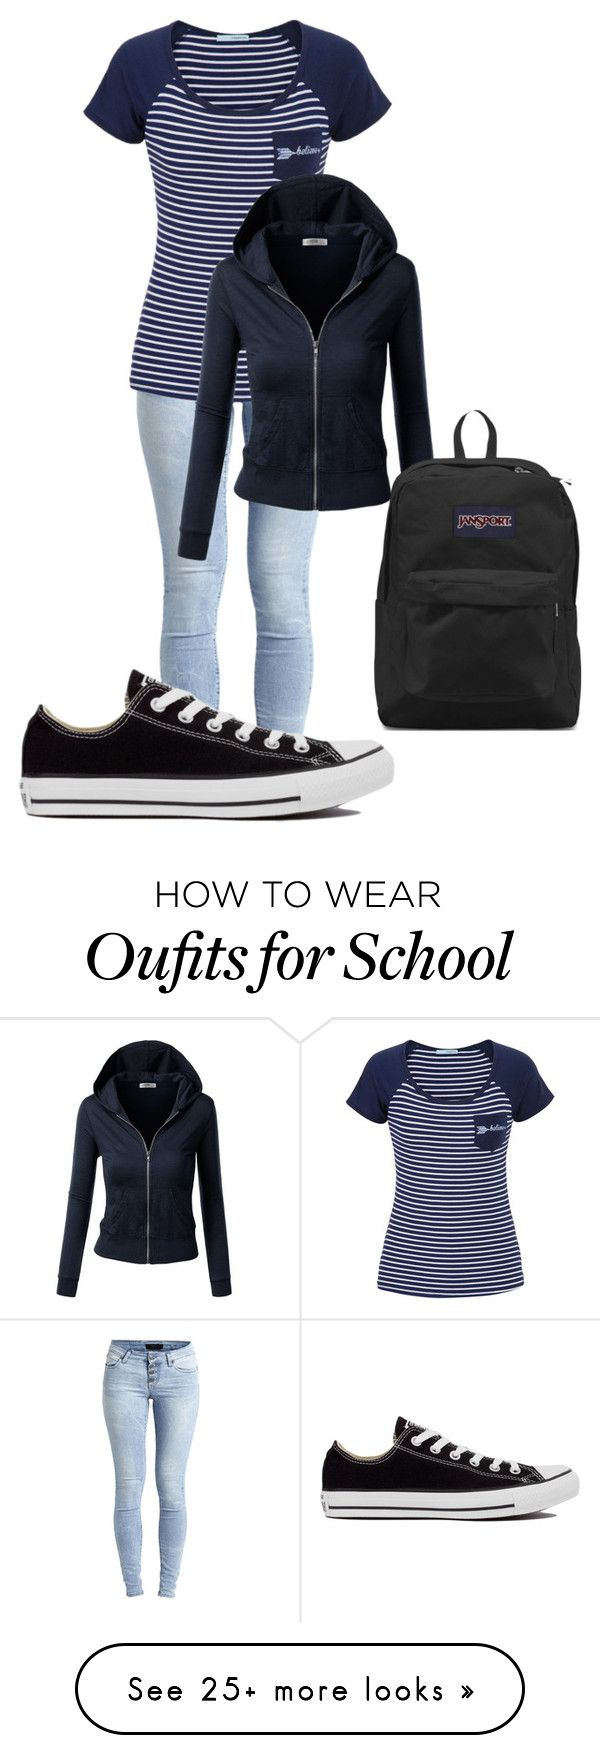 """""""School- Monday"""" by zumiez-skater on Polyvore featuring Object Collectors Item, maurices, J.TOMSON, Converse and JanSport"""